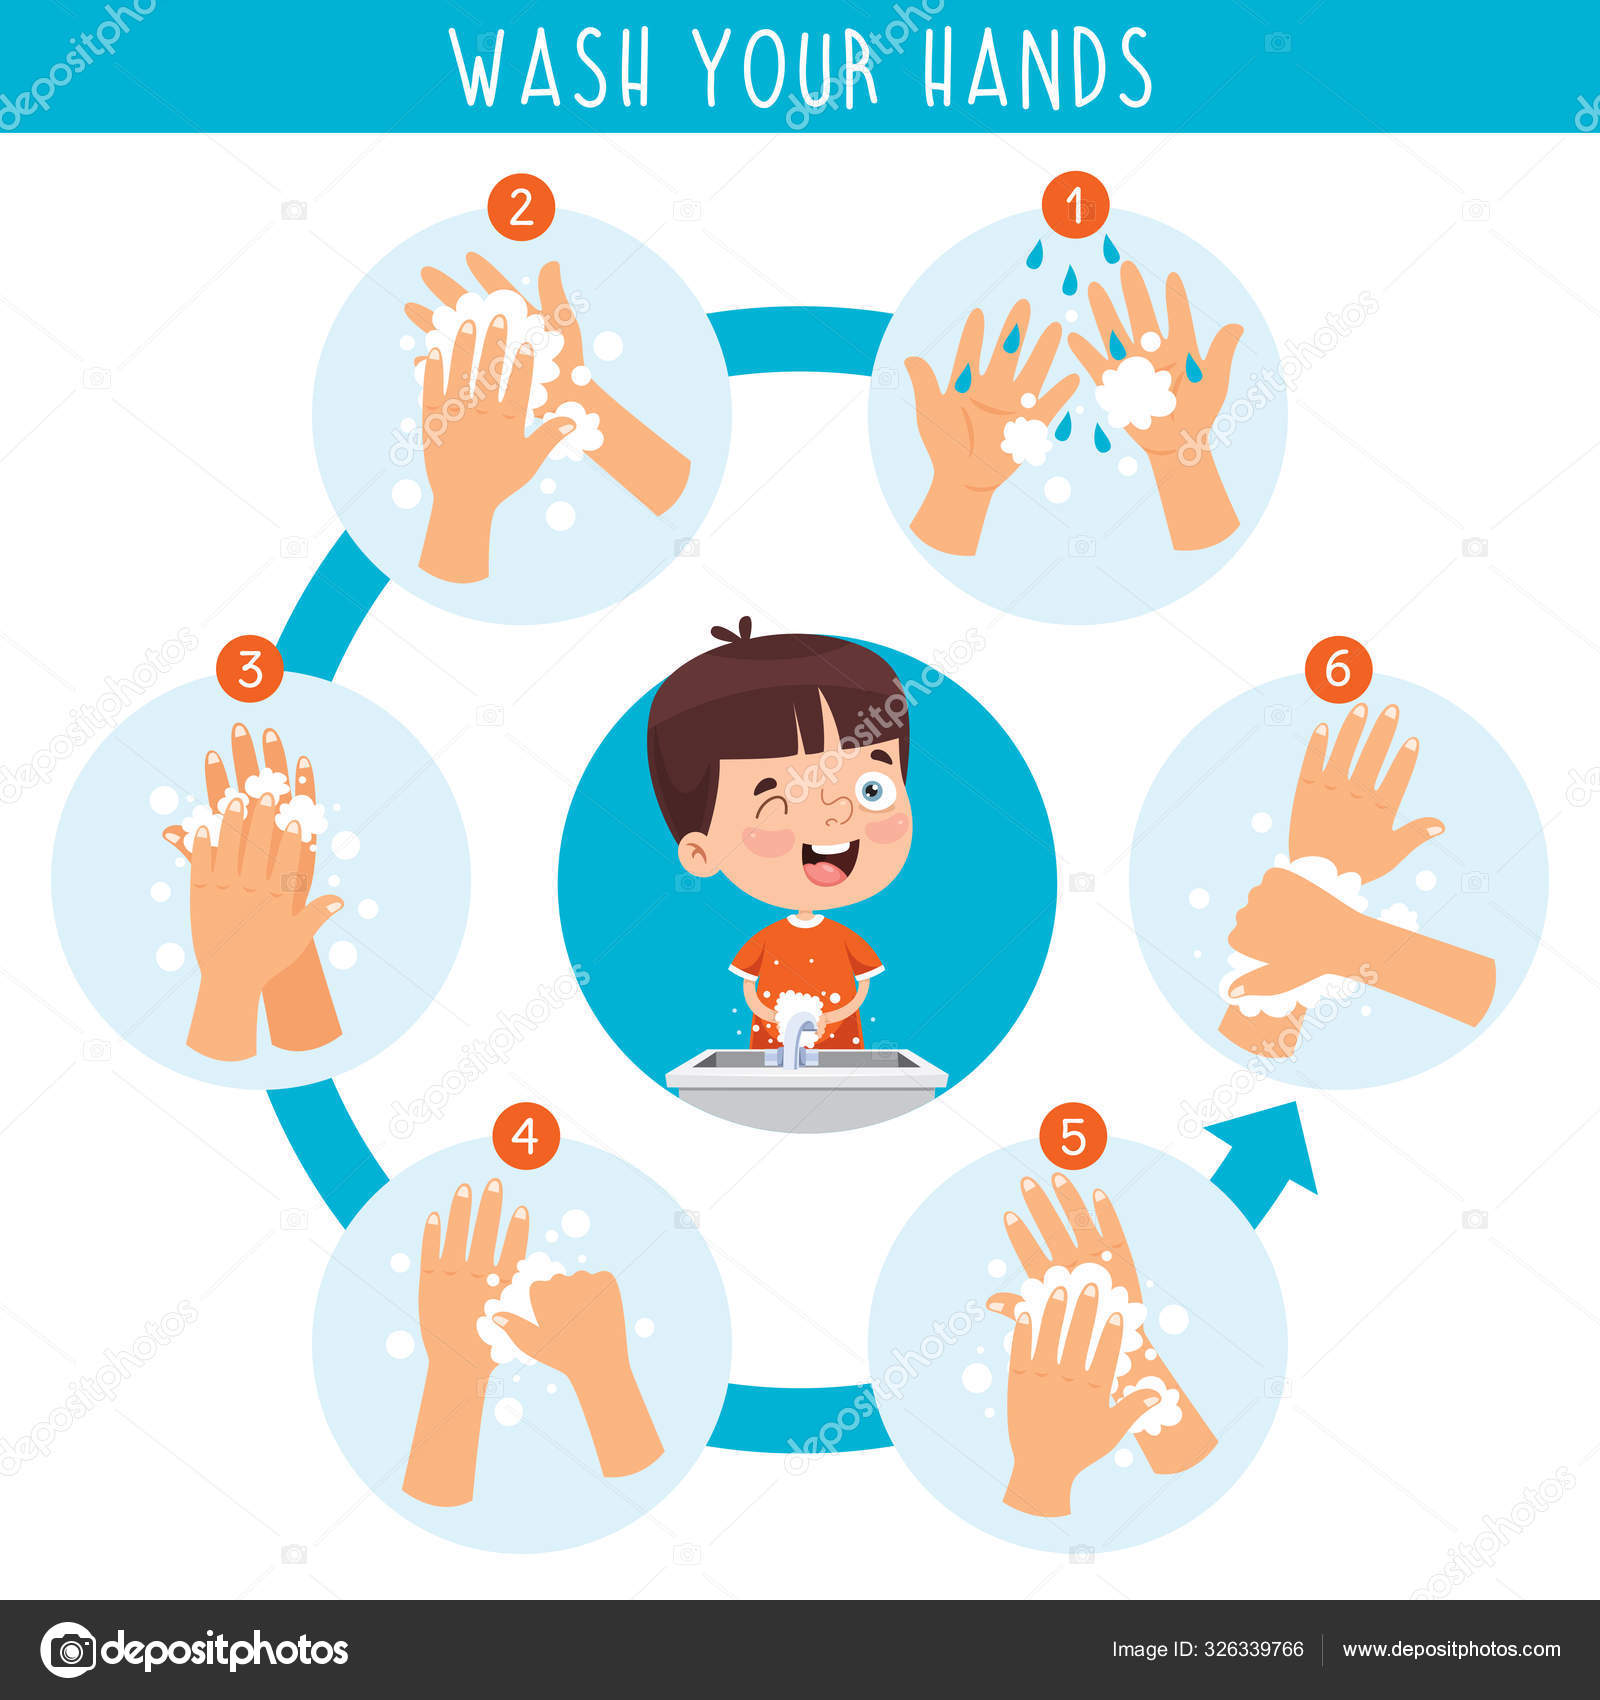 9 steps to properly wash your hands. Flat design modern vector illustration  concept. Download a Free Pr… in 2020 | Hand washing poster, Vector  illustration, Wash your hands